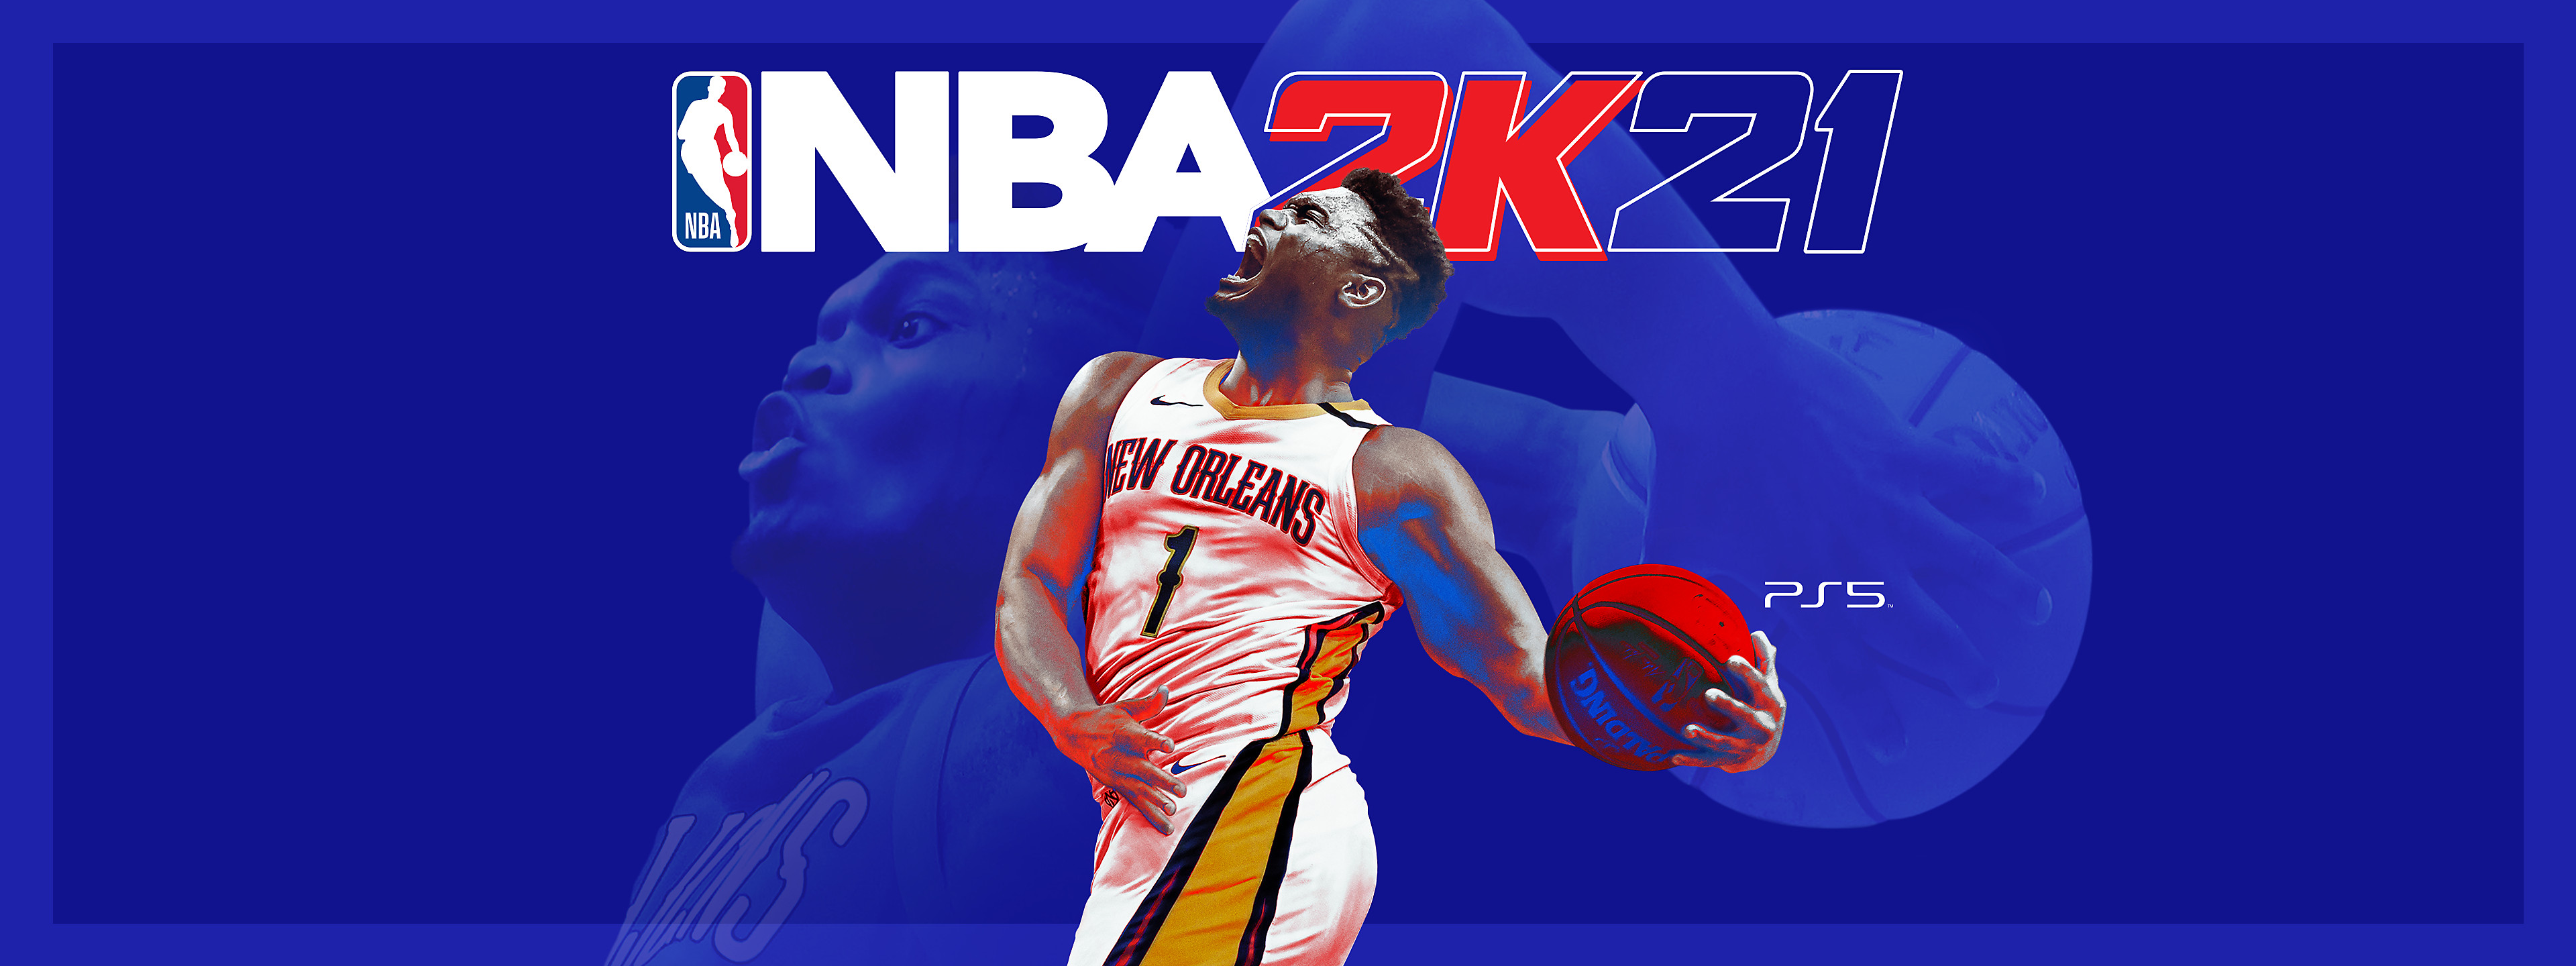 NBA 2K21 - Now Available for PS5